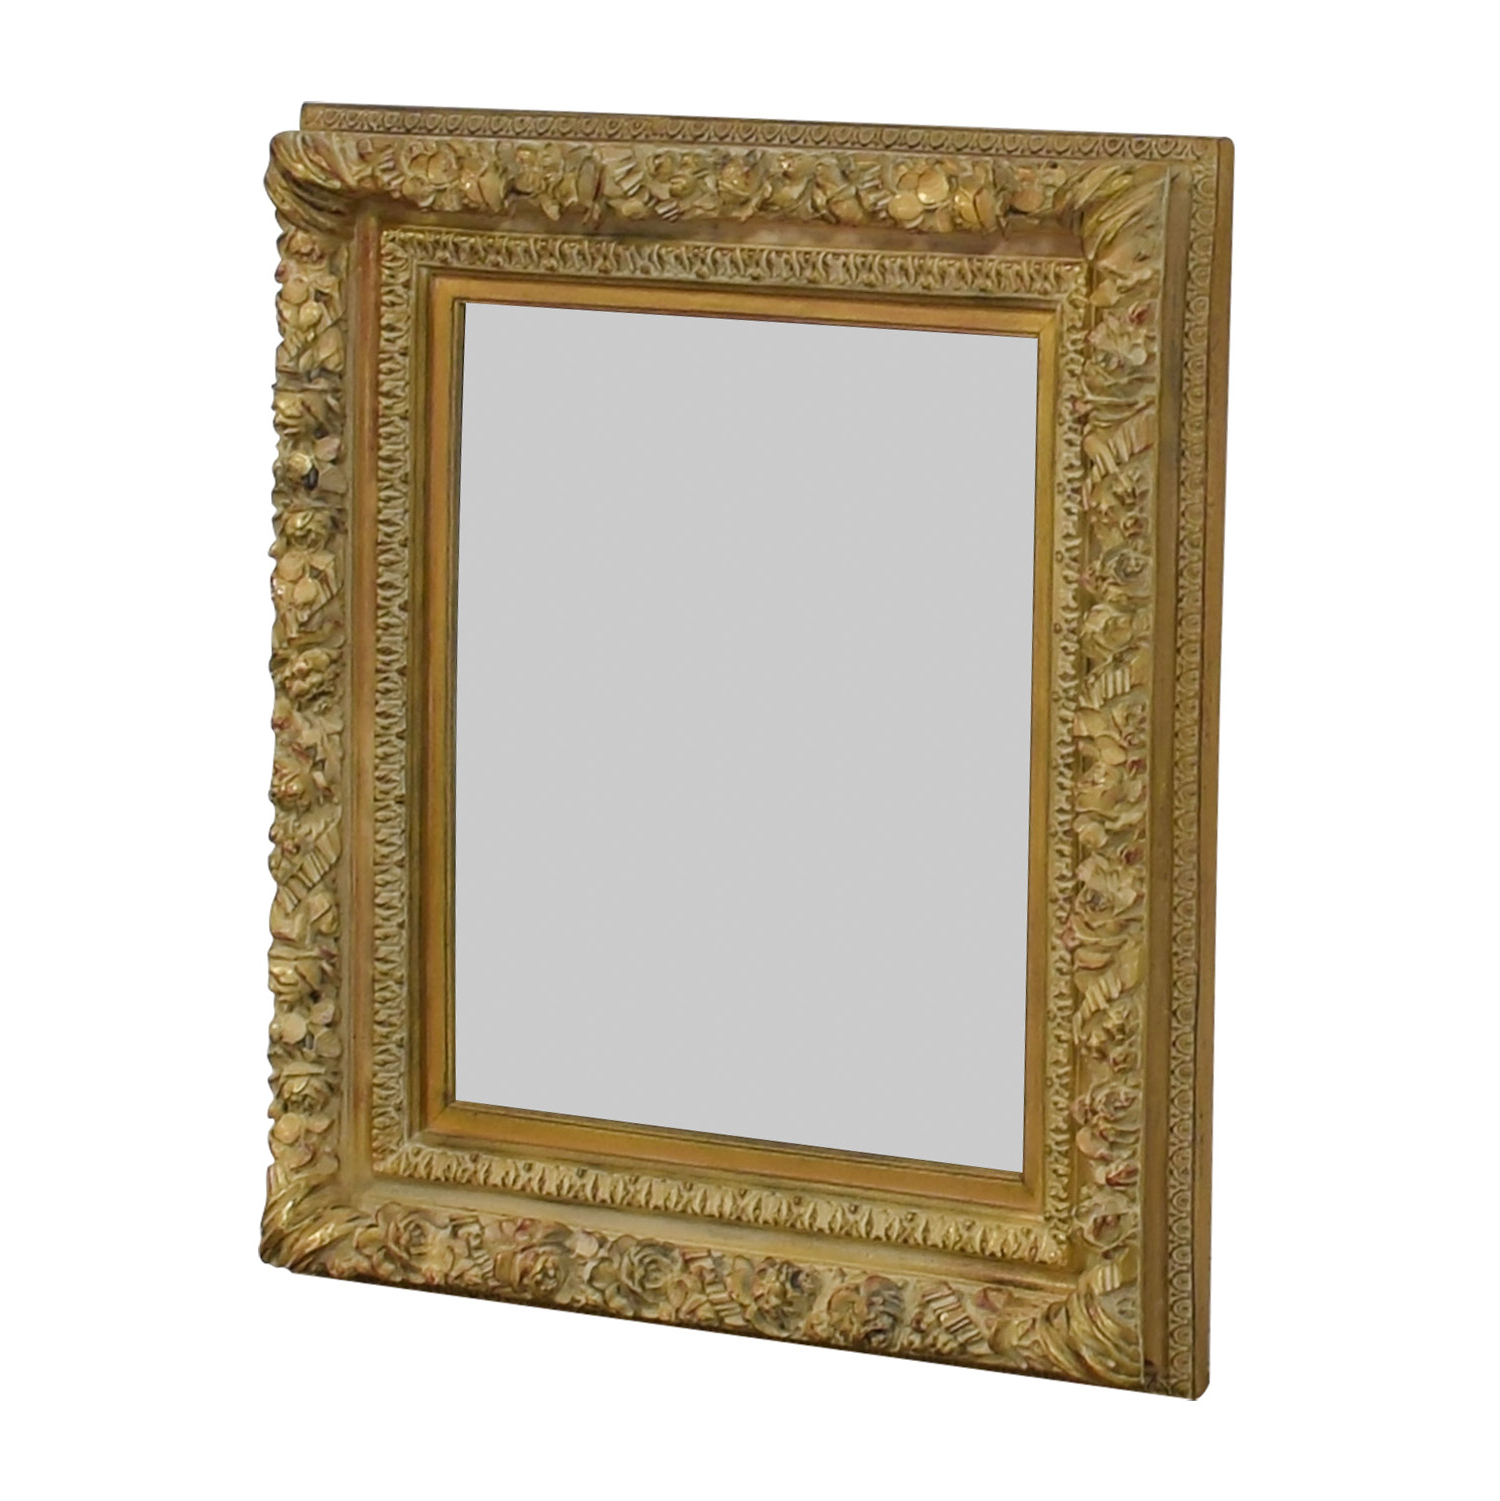 [%64% Off – Bombay Company Bombay Home Decor Gold Framed Wall Mirror / Decor In Latest Home Wall Mirrors|home Wall Mirrors Pertaining To Most Up To Date 64% Off – Bombay Company Bombay Home Decor Gold Framed Wall Mirror / Decor|most Popular Home Wall Mirrors In 64% Off – Bombay Company Bombay Home Decor Gold Framed Wall Mirror / Decor|best And Newest 64% Off – Bombay Company Bombay Home Decor Gold Framed Wall Mirror / Decor Within Home Wall Mirrors%] (View 12 of 20)